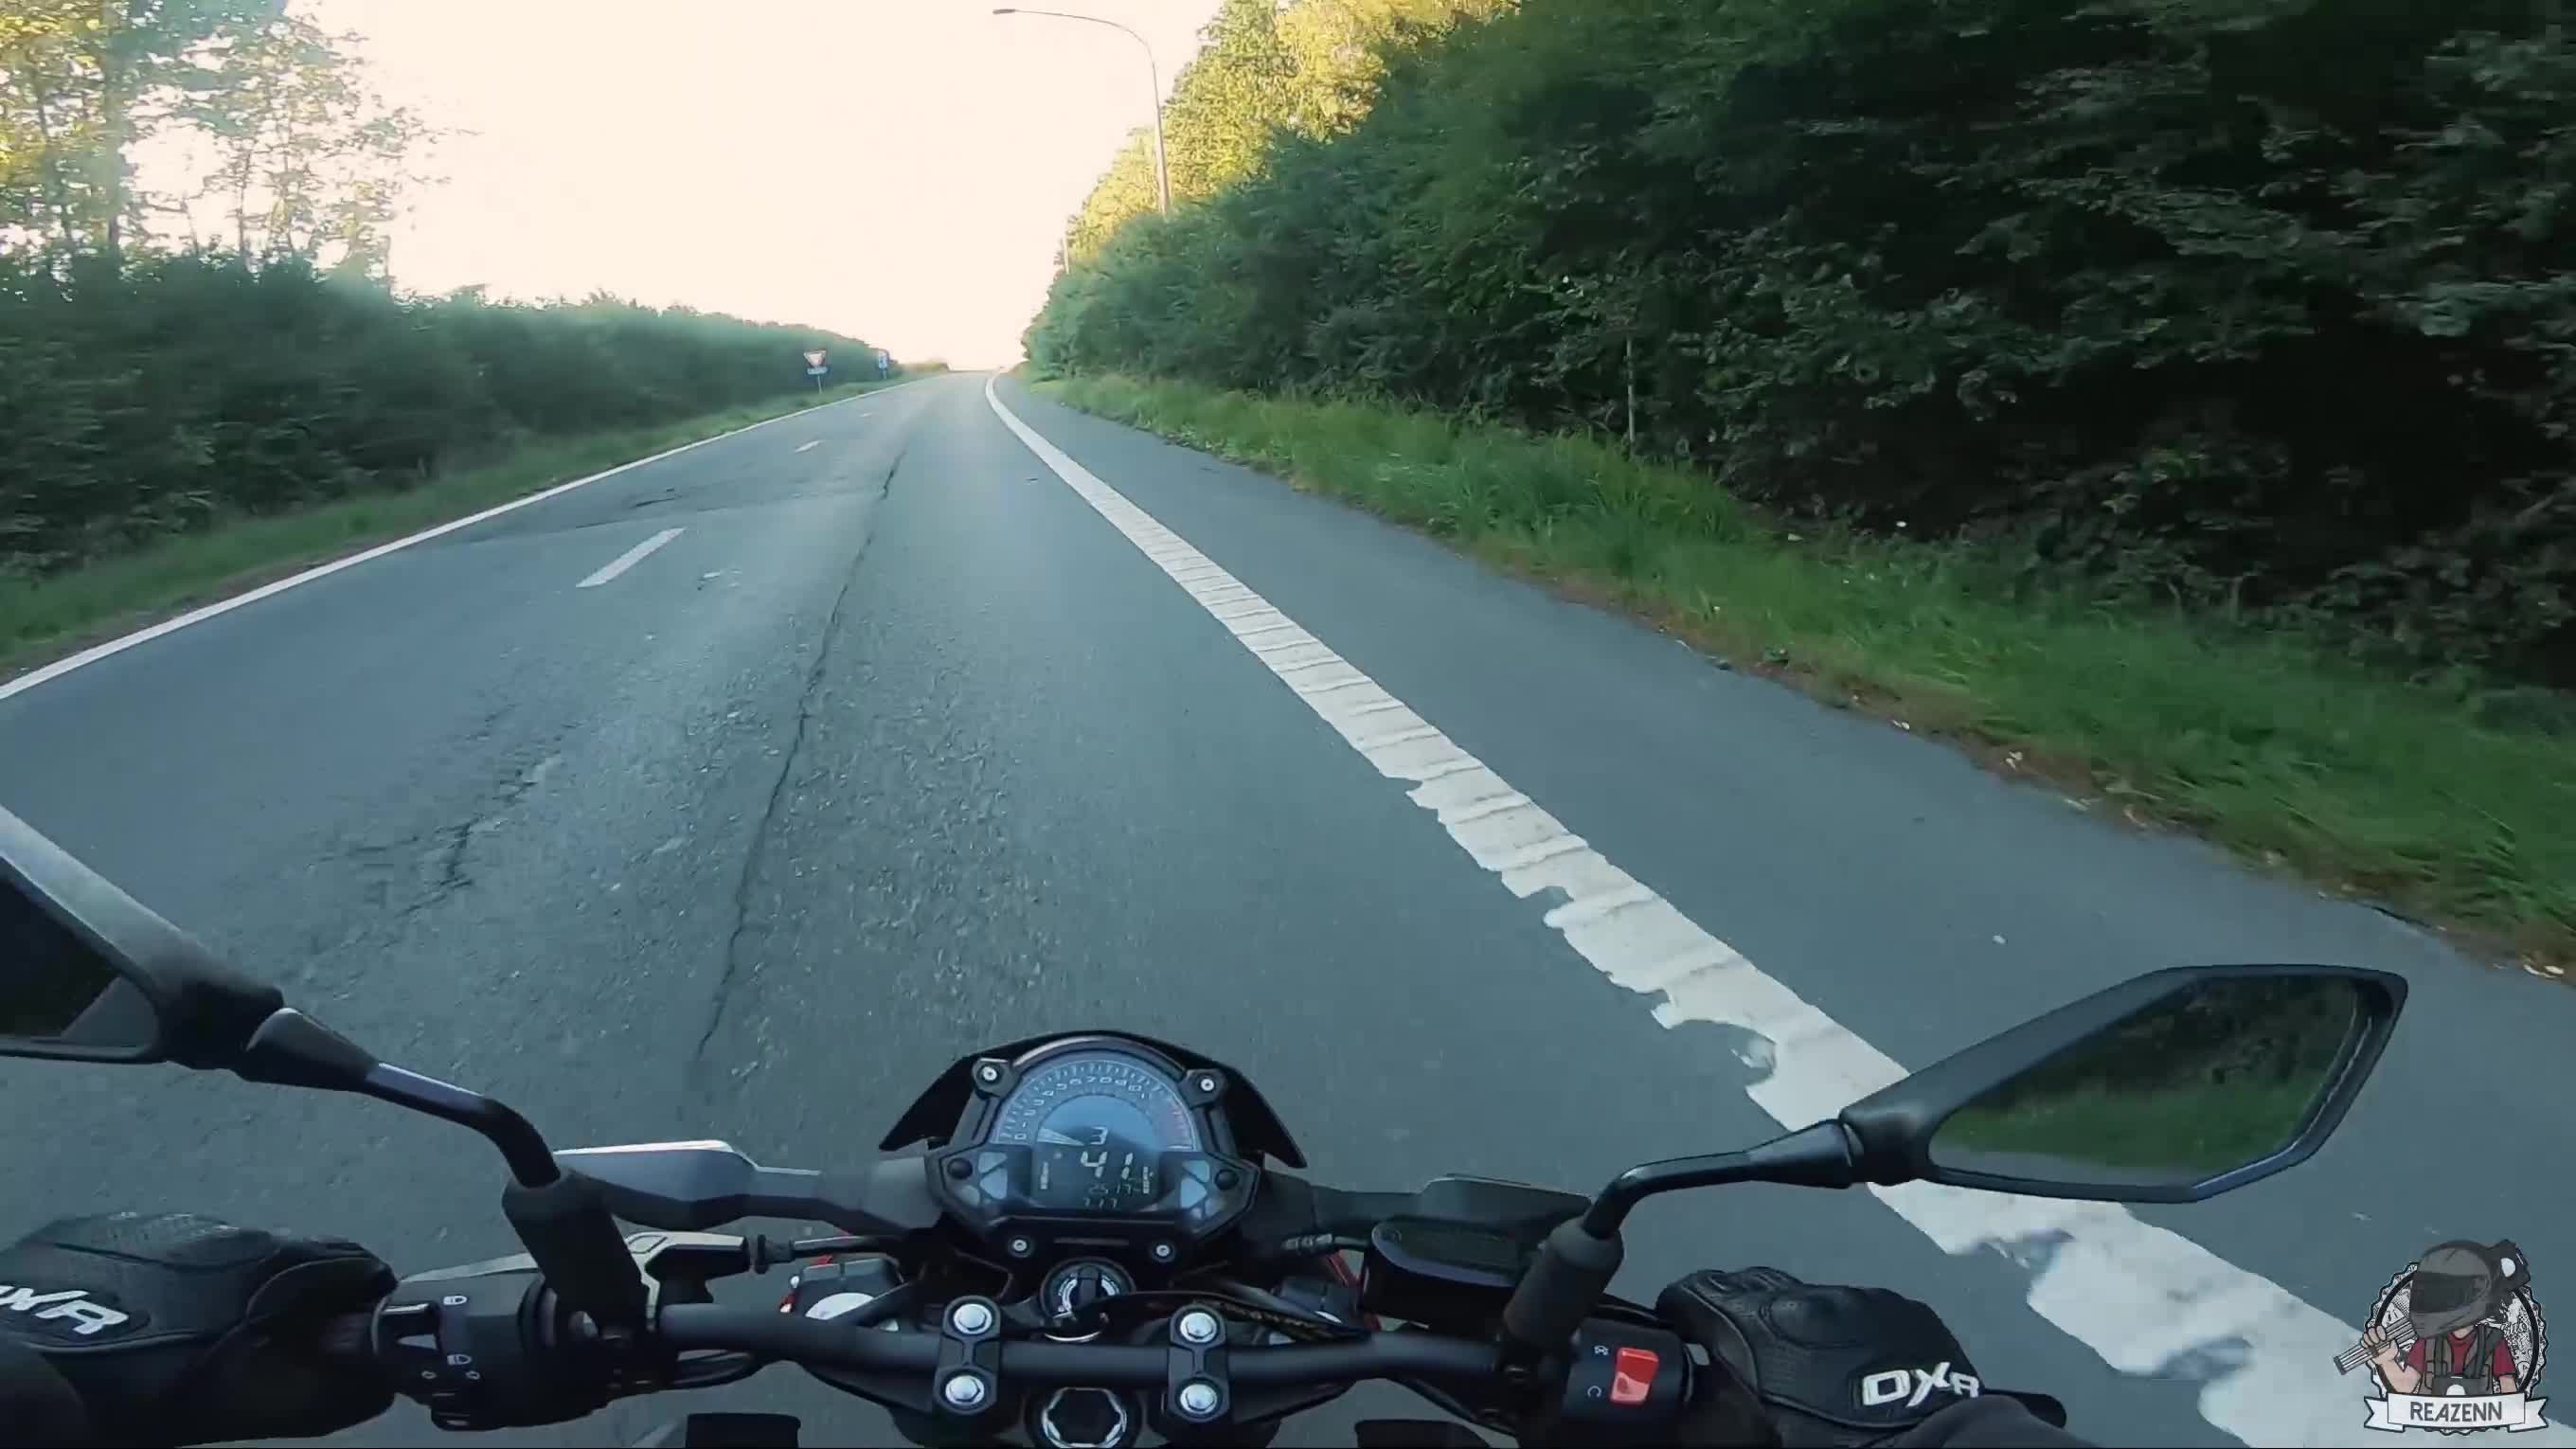 Motorcyclist Stops Traffic To Save Cute Kitten From Busy Road